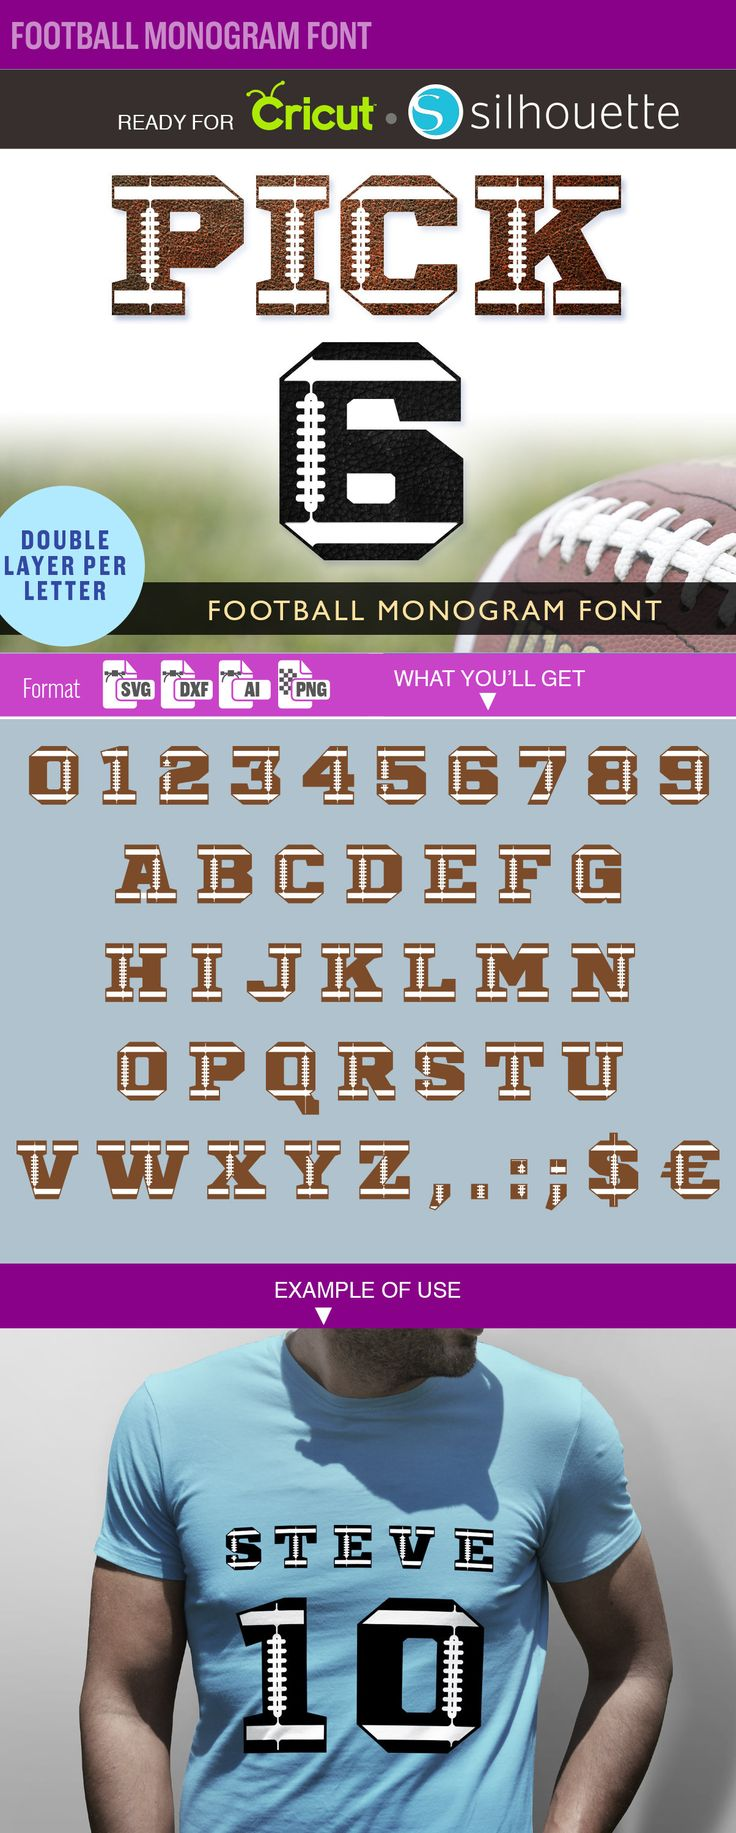 FOOTBALL FONT svg US Football Monogram font Svg Cut Files Vinyl Cutter Cricut Silhouette Letter Number College Varsity Jersey Alphabet 179 by SVGmonster on Etsy